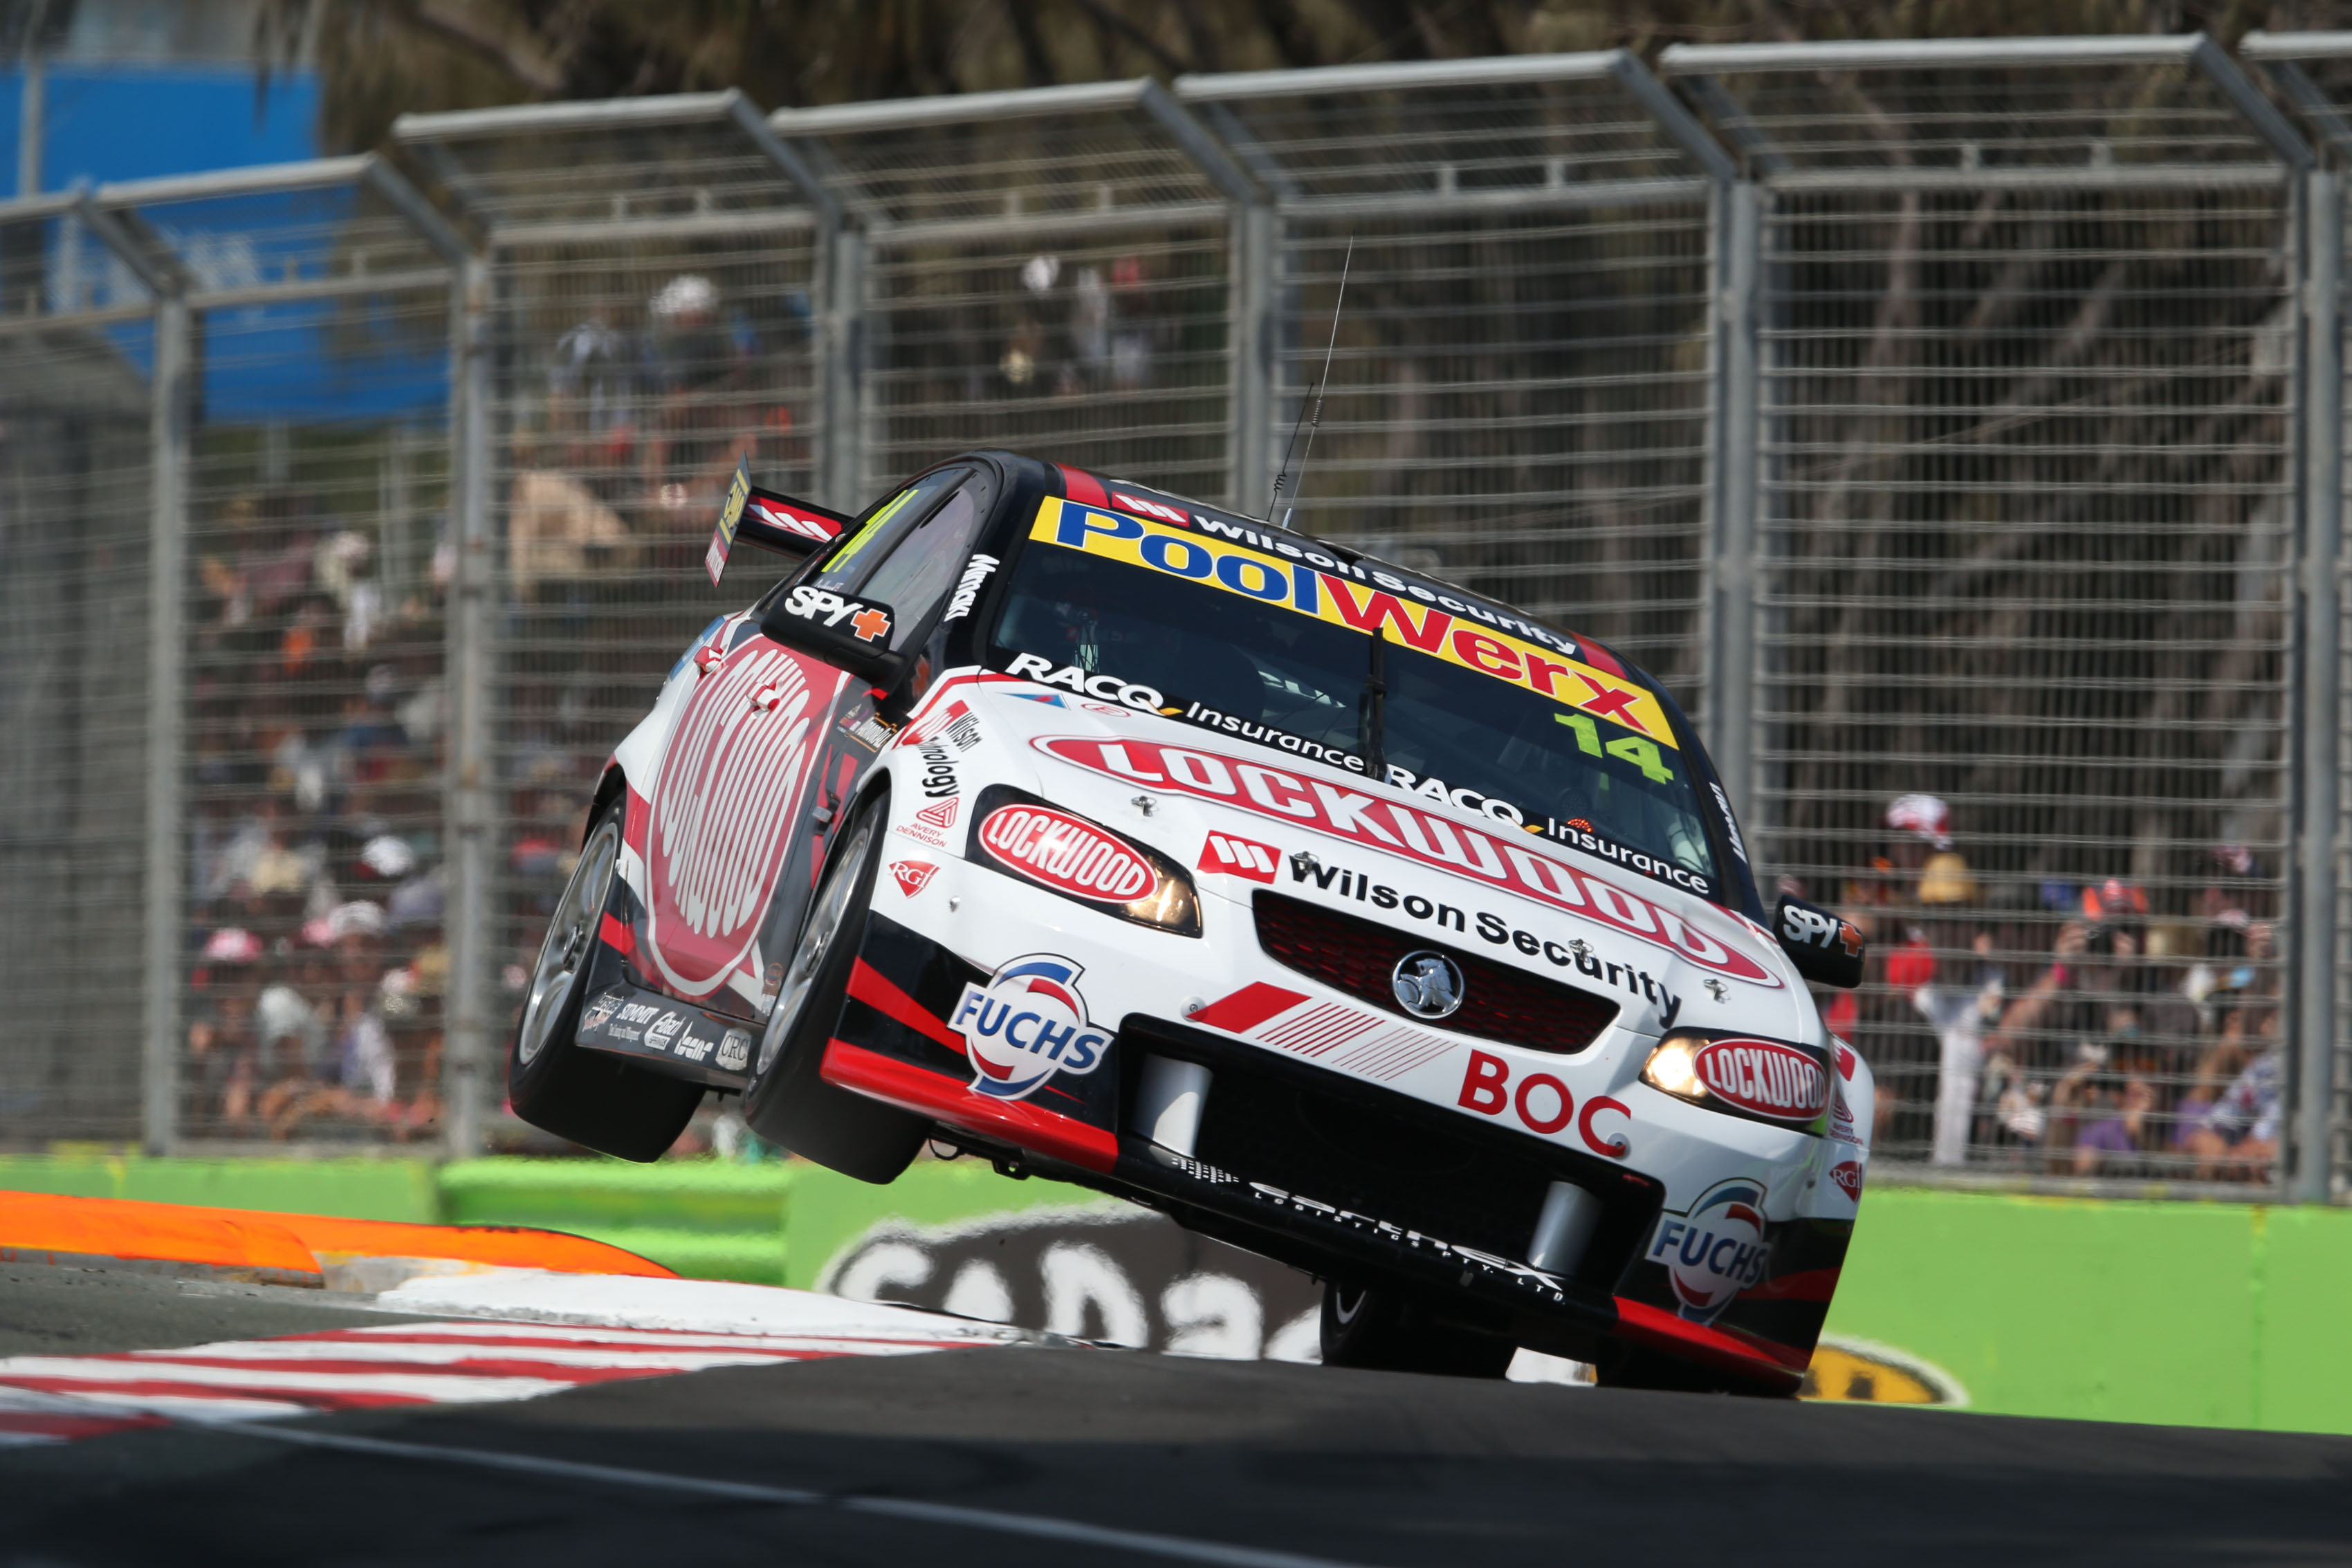 V8 Supercars HD Wallpapers Hd Wallpapers 3400x2267